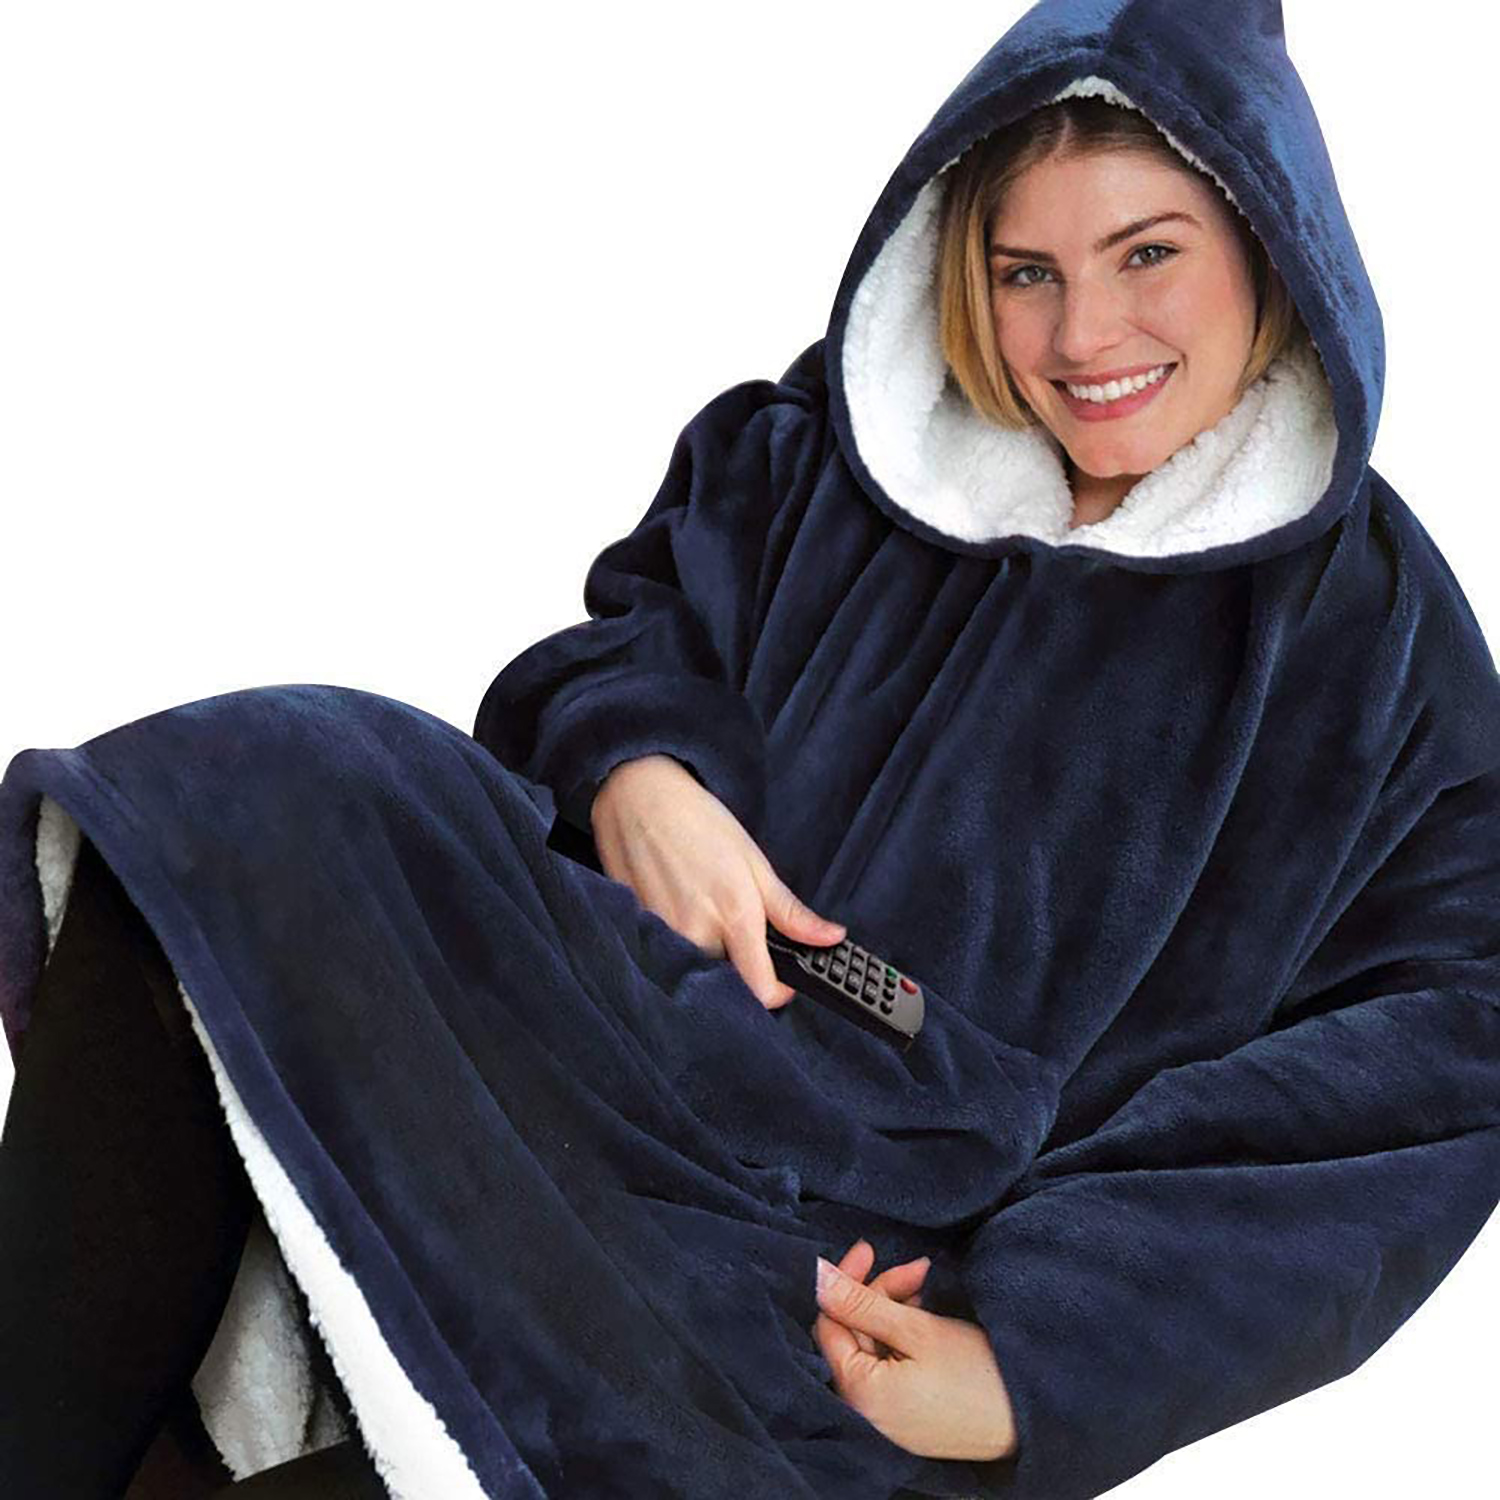 Huggle Hoodie - Couverture à capuche ultra moelleuse